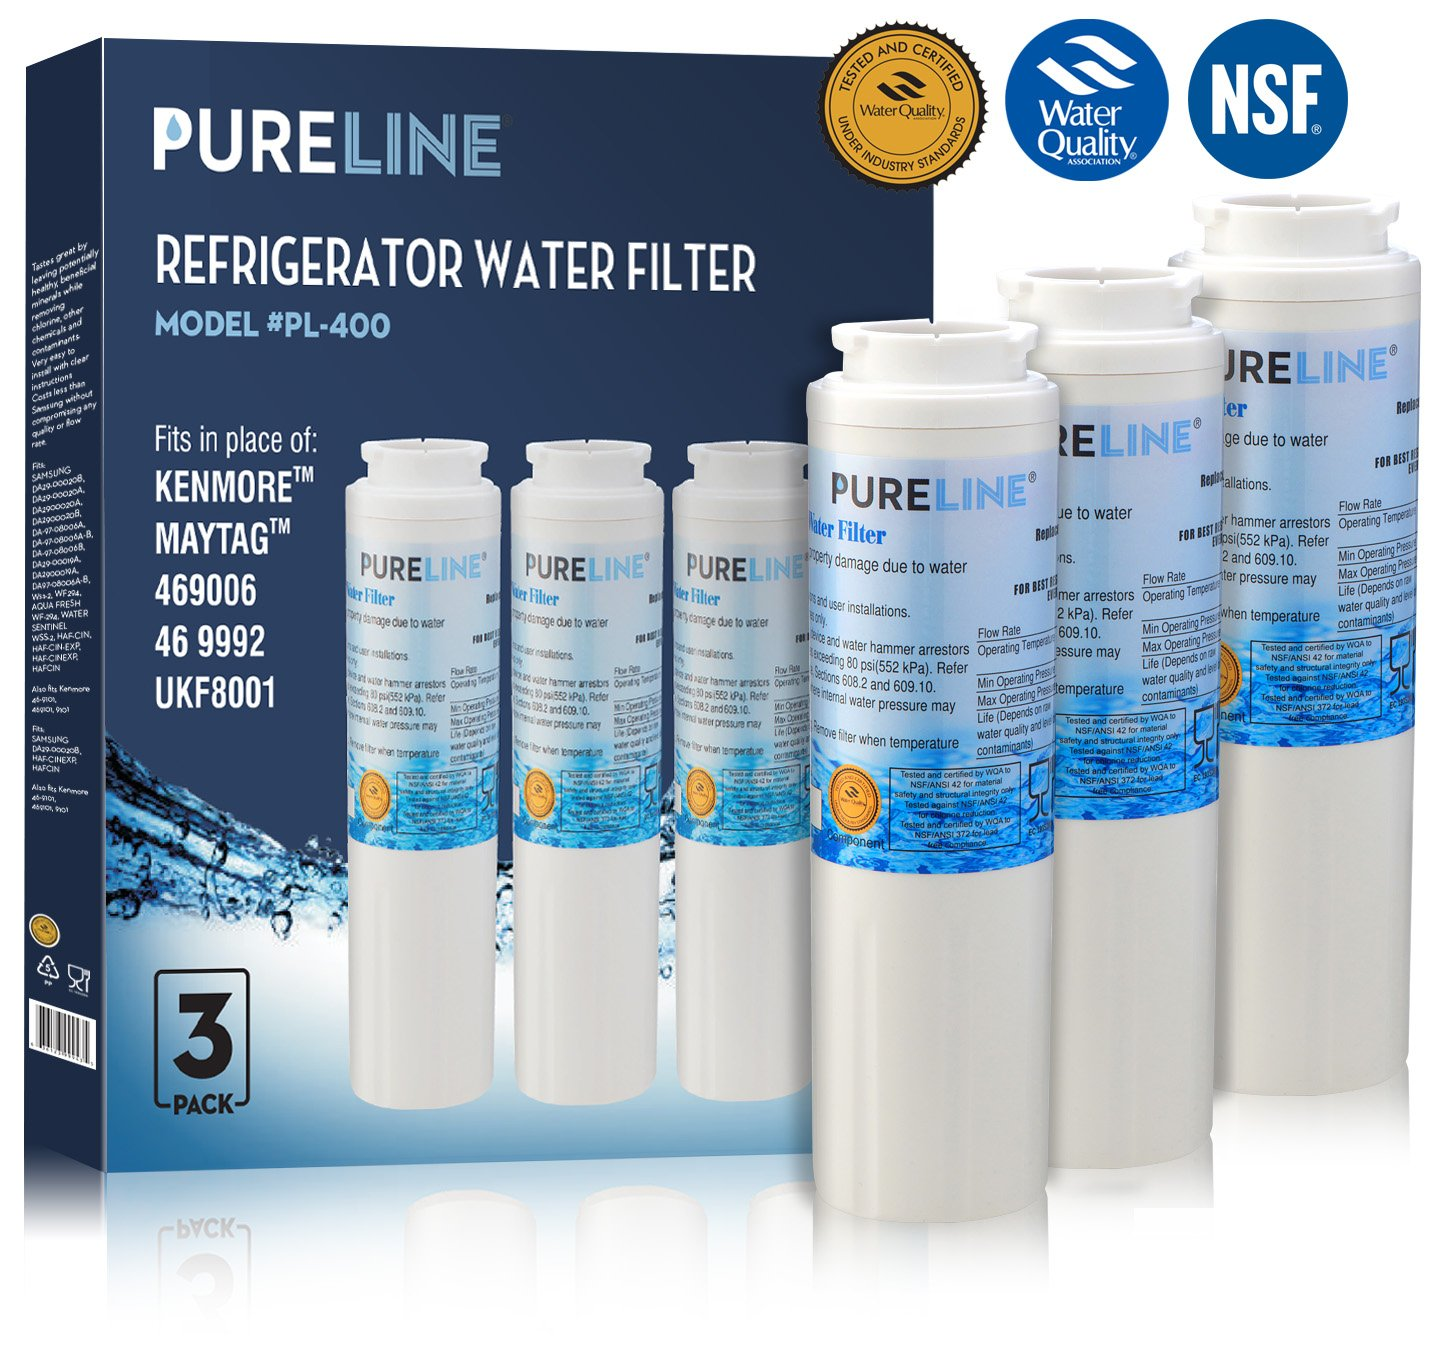 Maytag UKF8001 PUR Fast Flow Water Filter Replacement UKF8001AXX, EDR4RXD1, Whirlpool 4396395, Puriclean II, Kenmore 9006 By Pure Line (3 Pack)